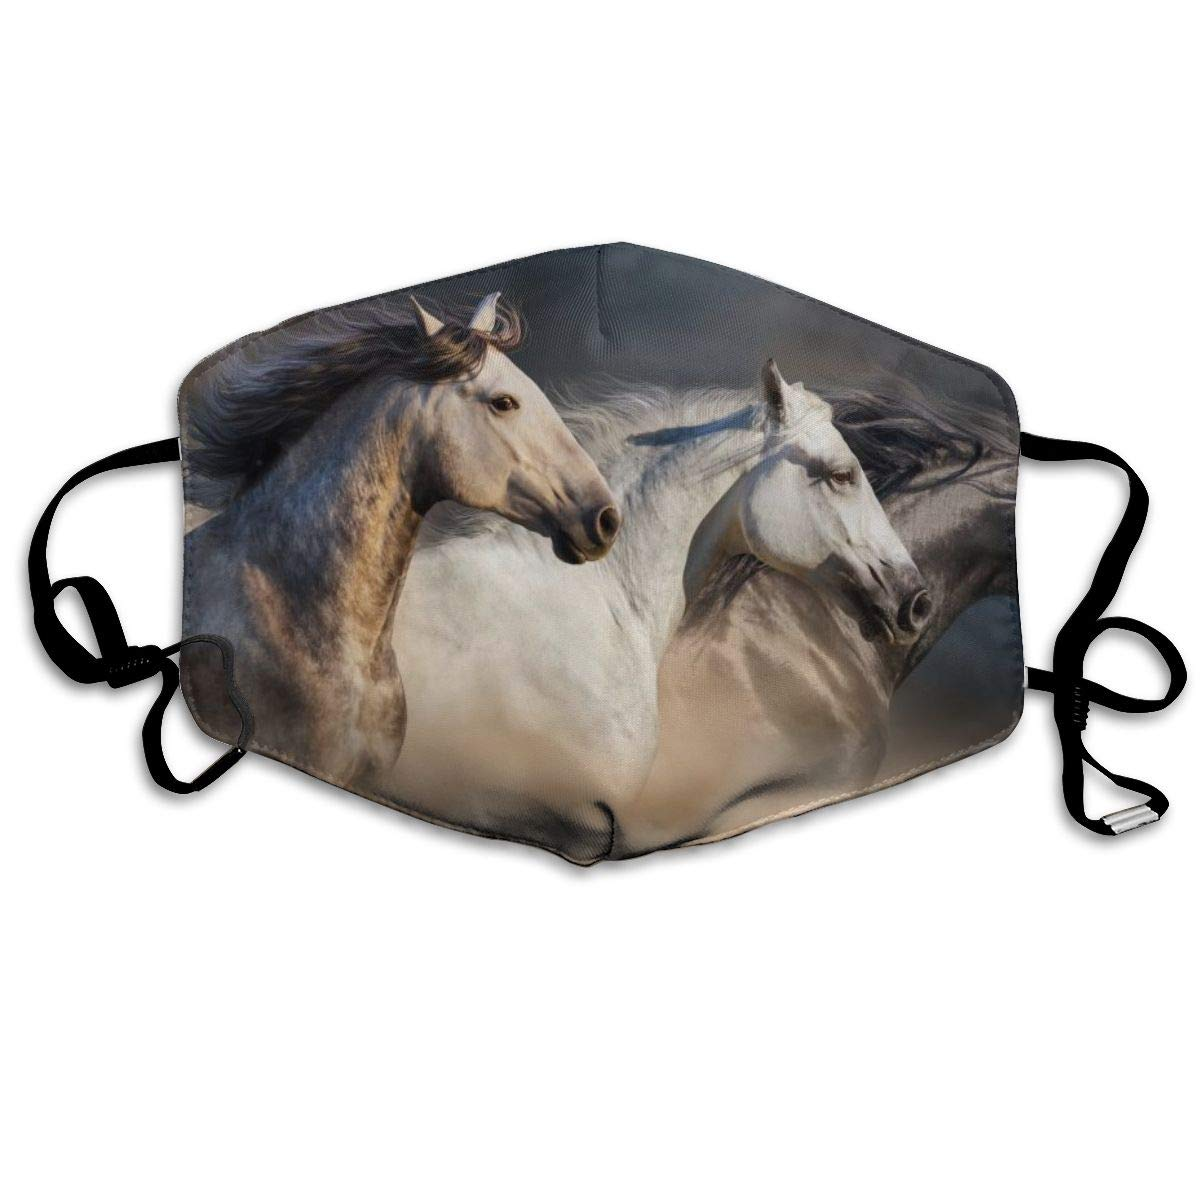 Mouth Mask Horses With Long Mane Fashion Earloop Face Mask For Kids Teens Men Women Winter Summer